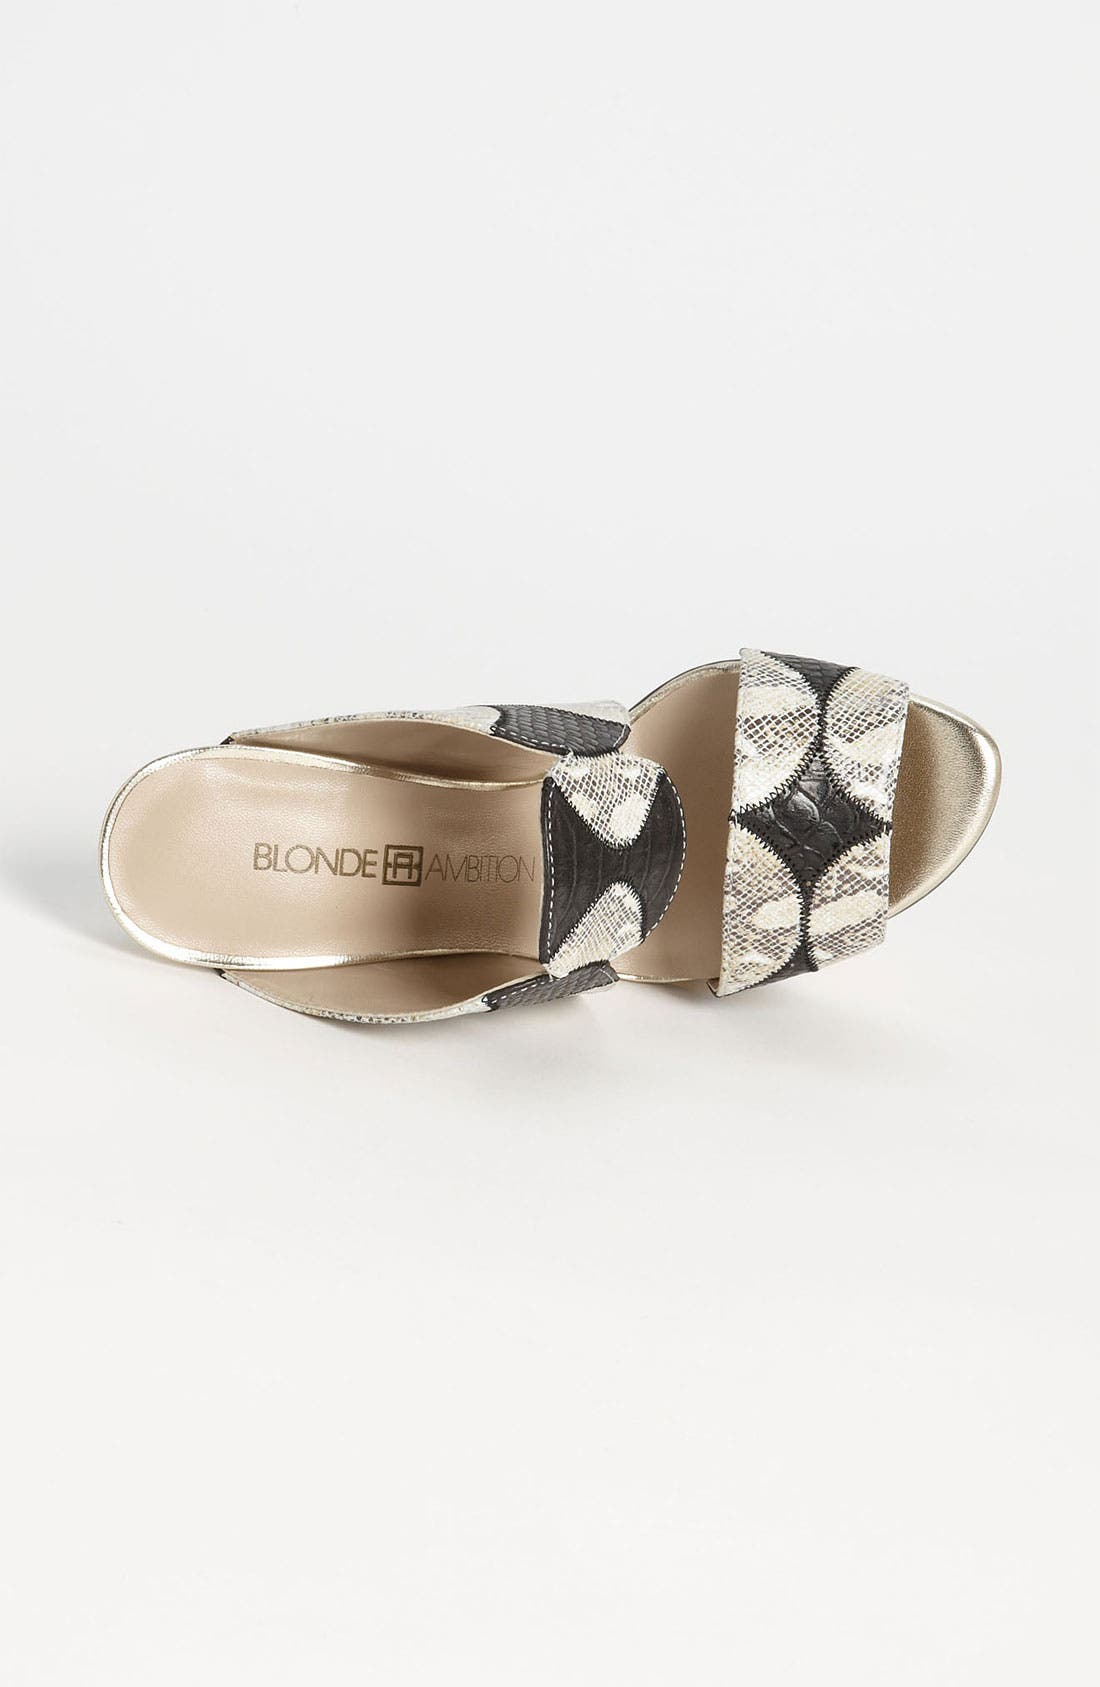 Alternate Image 3  - Blonde Ambition 'Ralley' Sandal